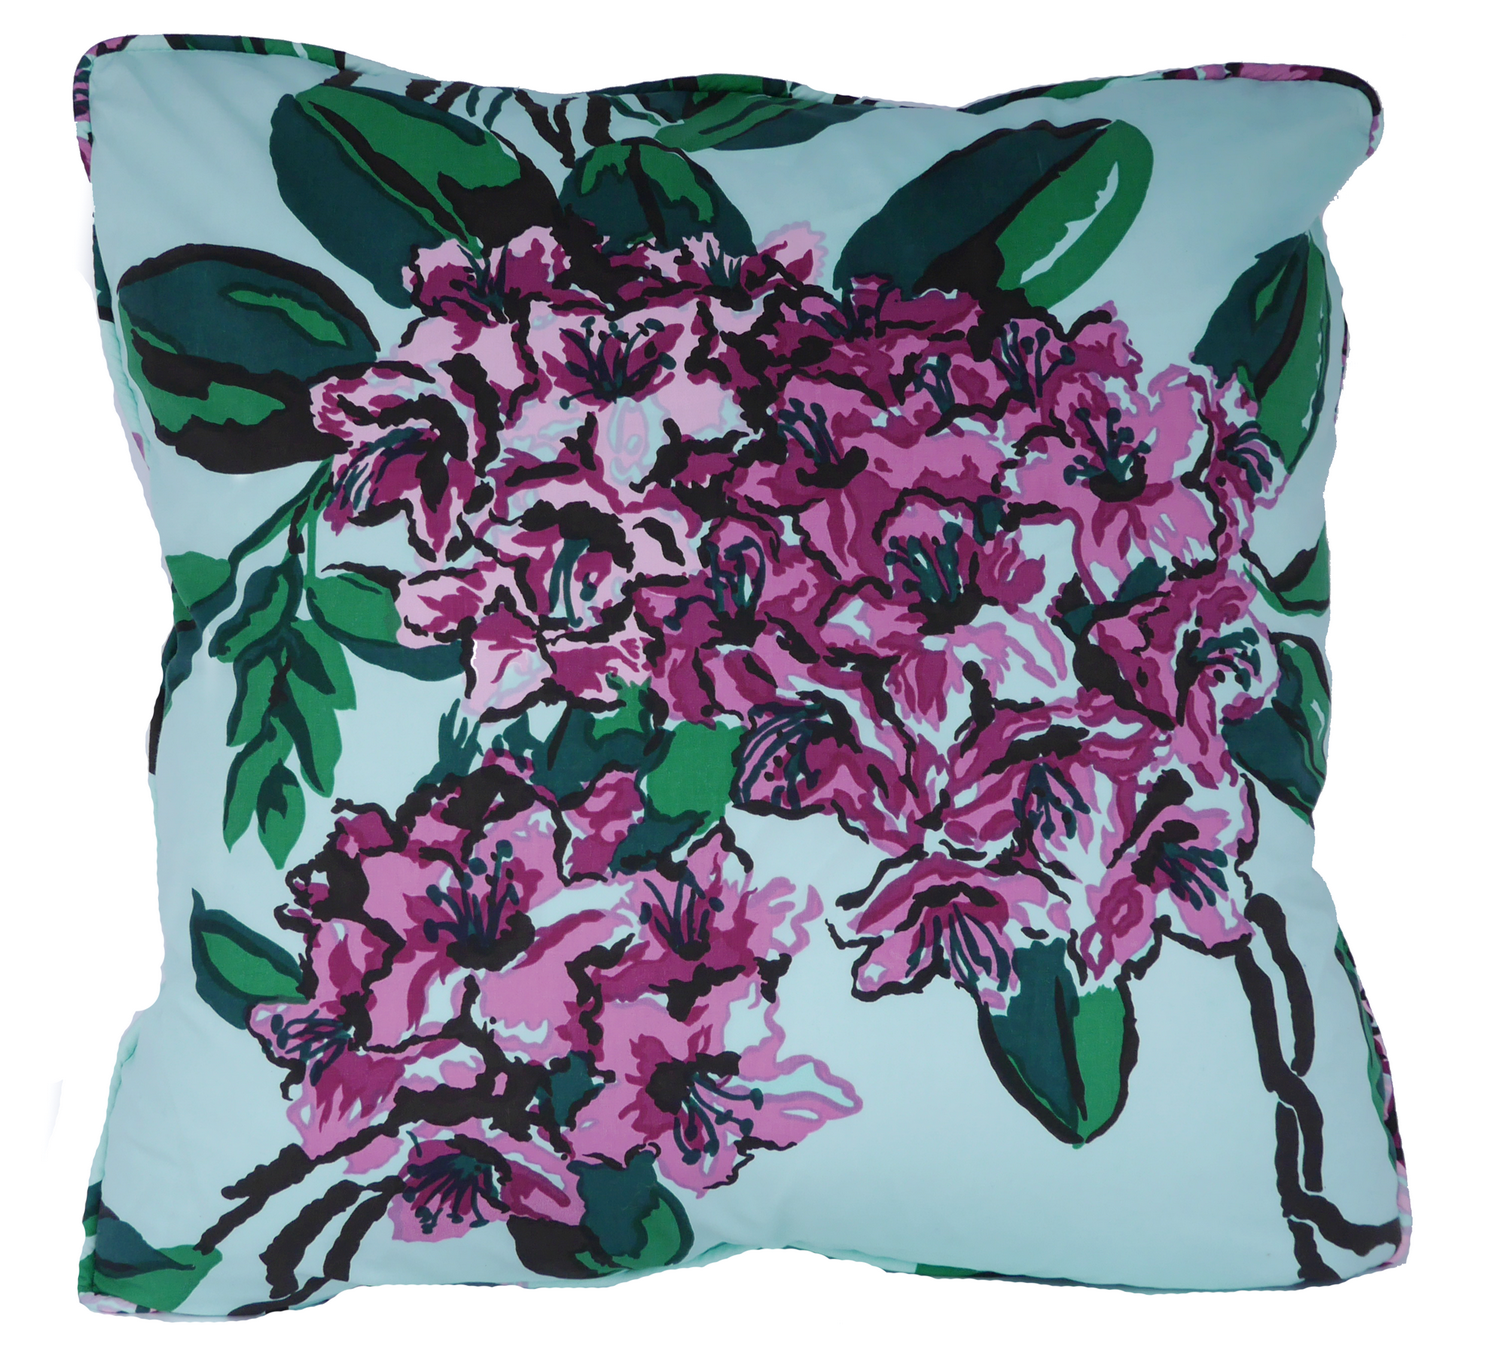 Rhododendron Mint Throw Pillow Cover - Carleton Varney